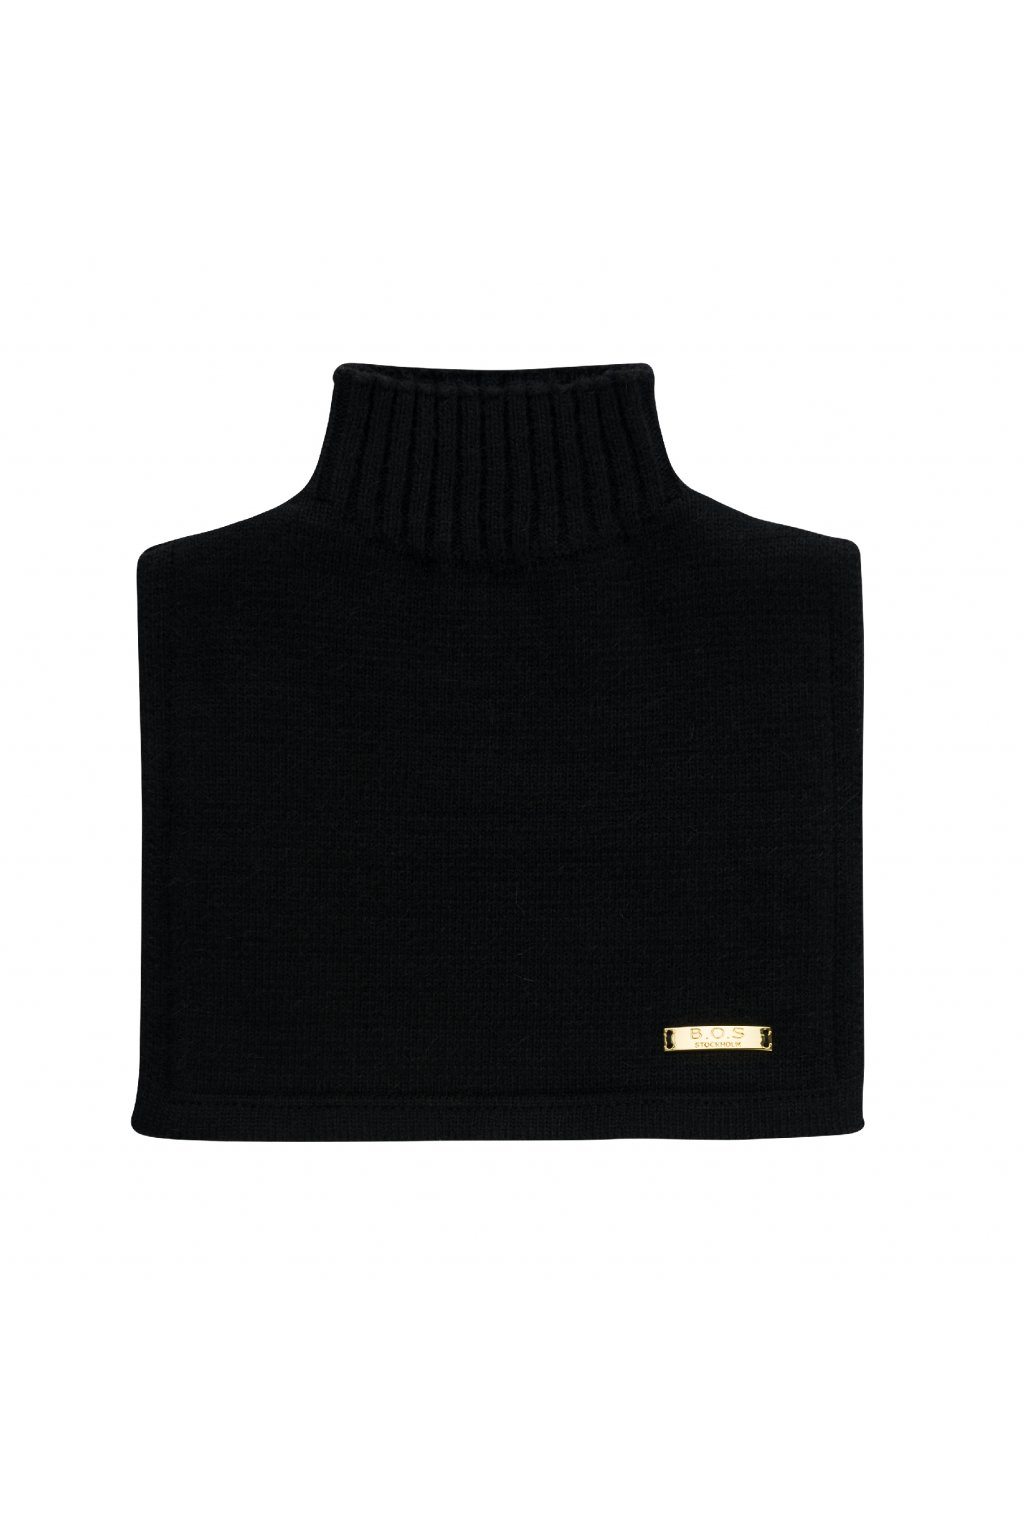 Neckwarmer, black